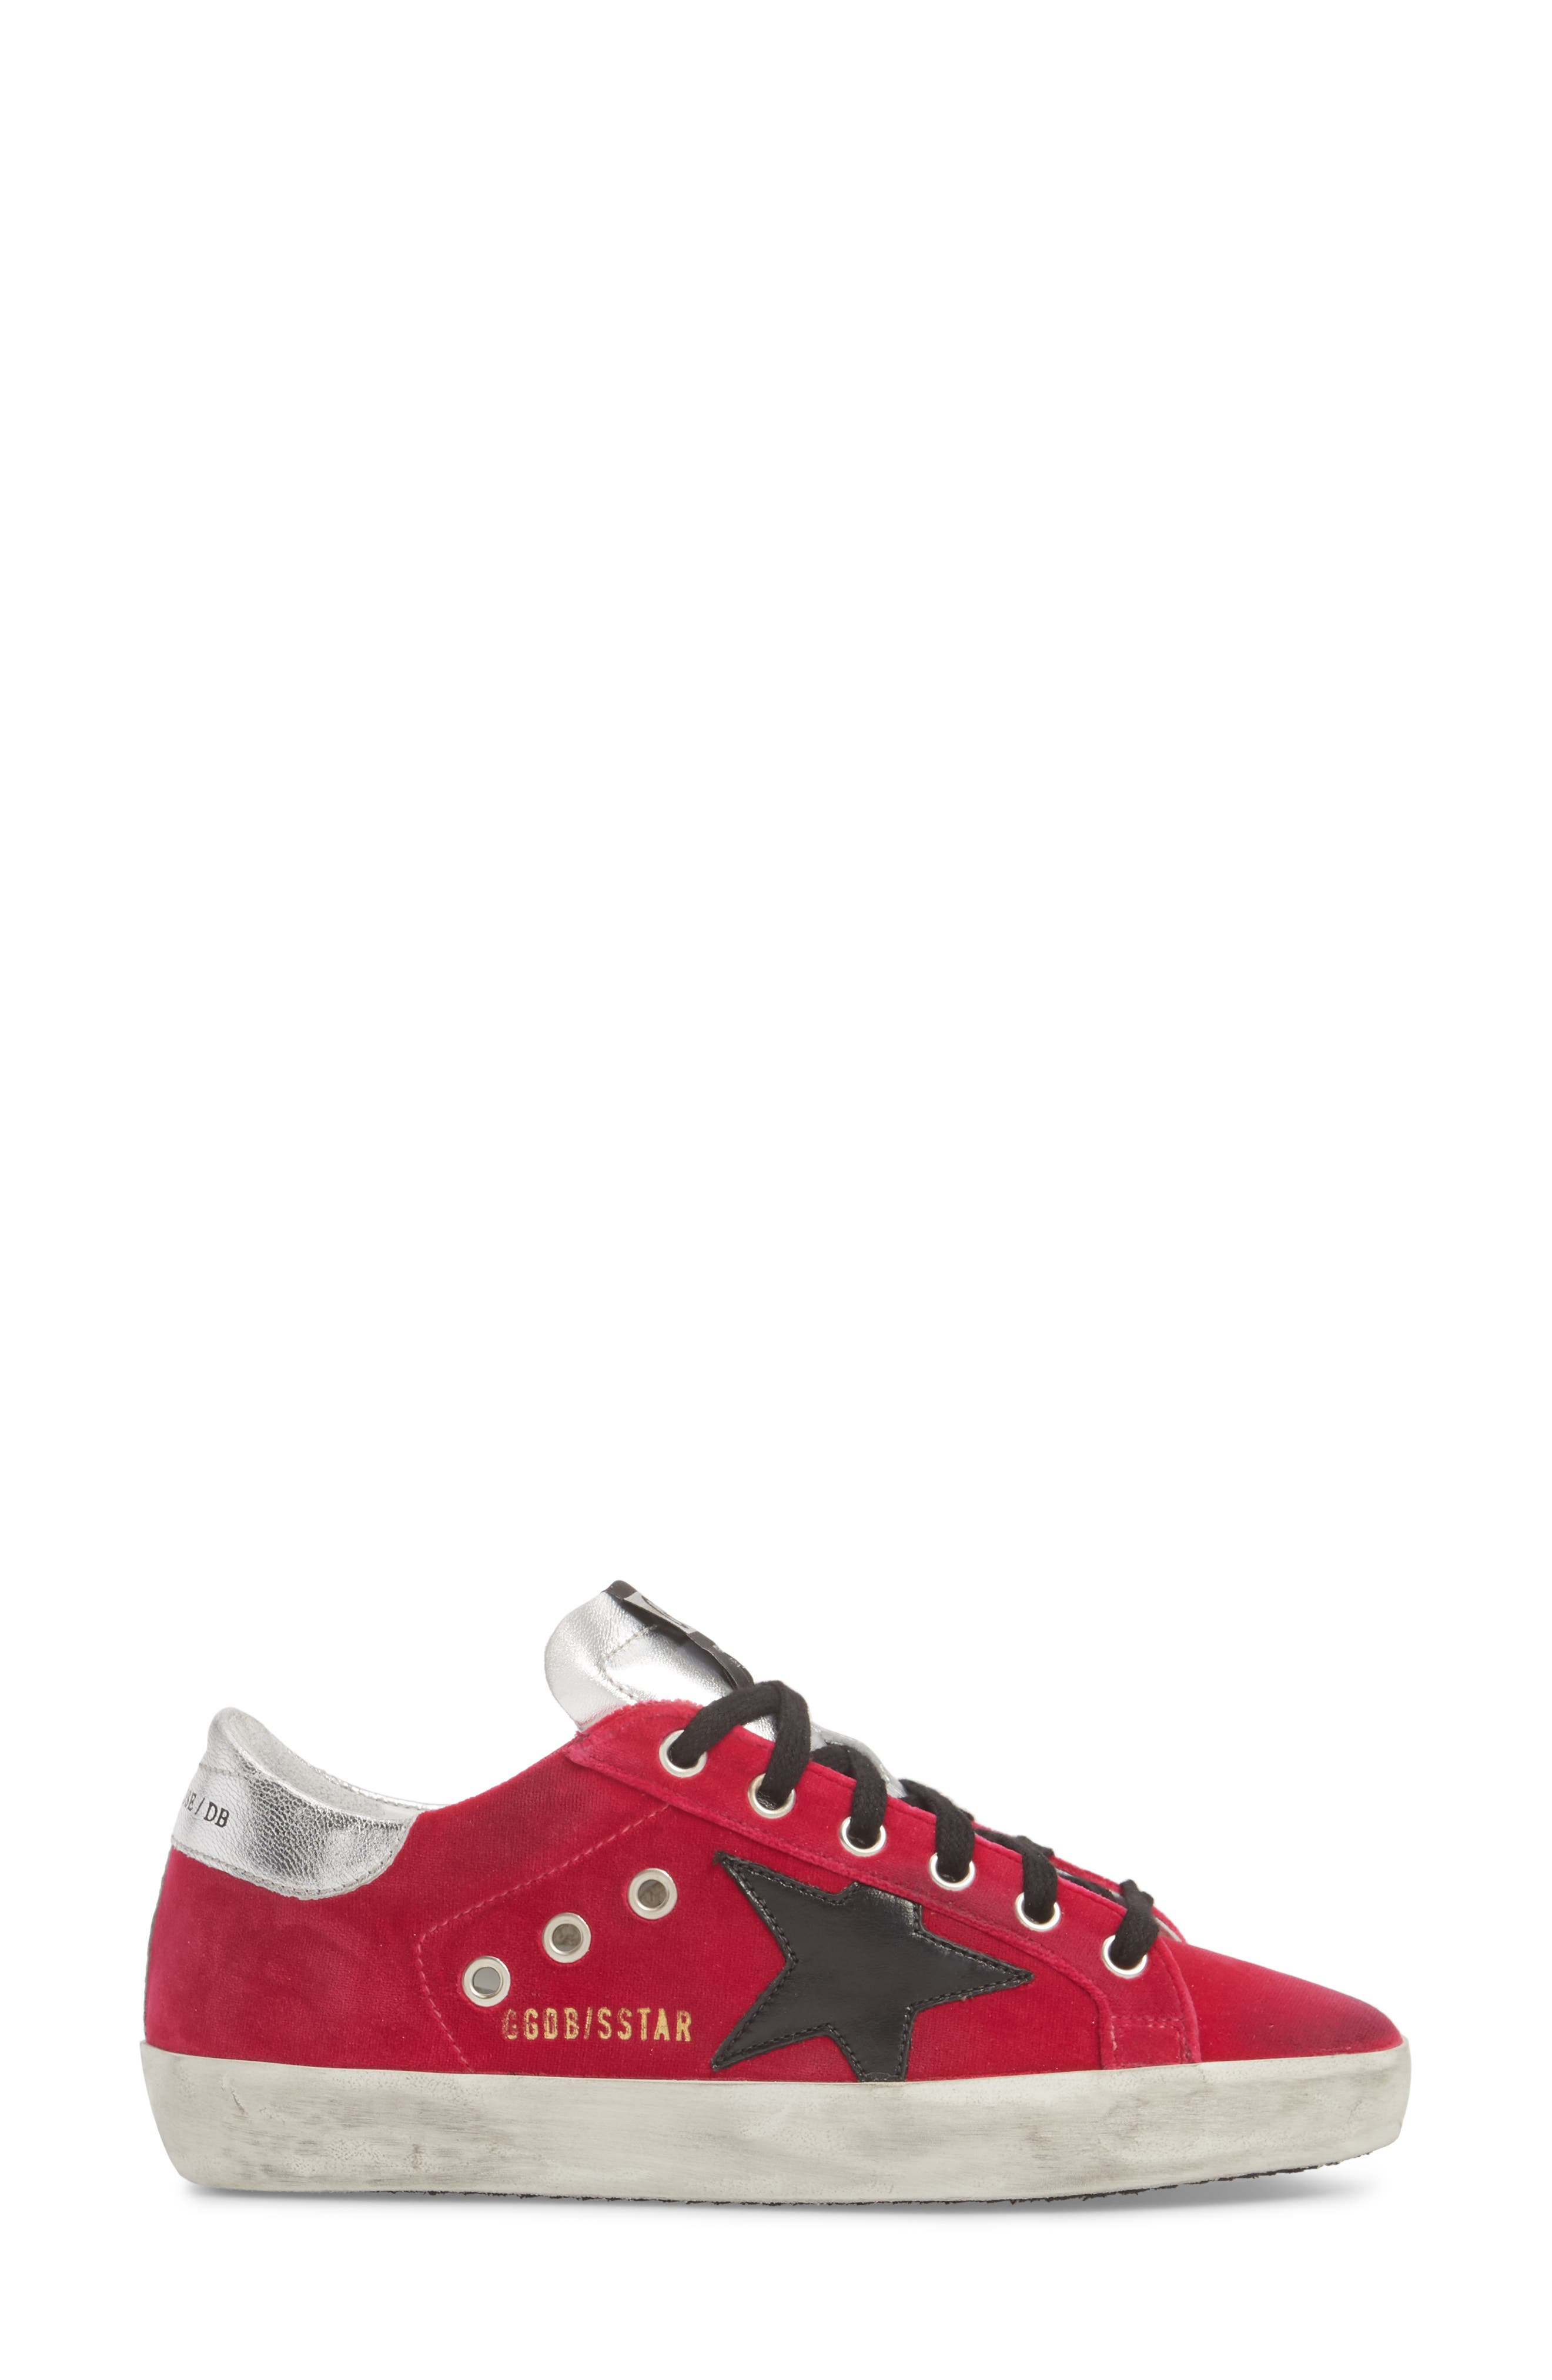 Superstar Low Top Sneaker,                             Alternate thumbnail 3, color,                             FUCHSIA/ BLACK